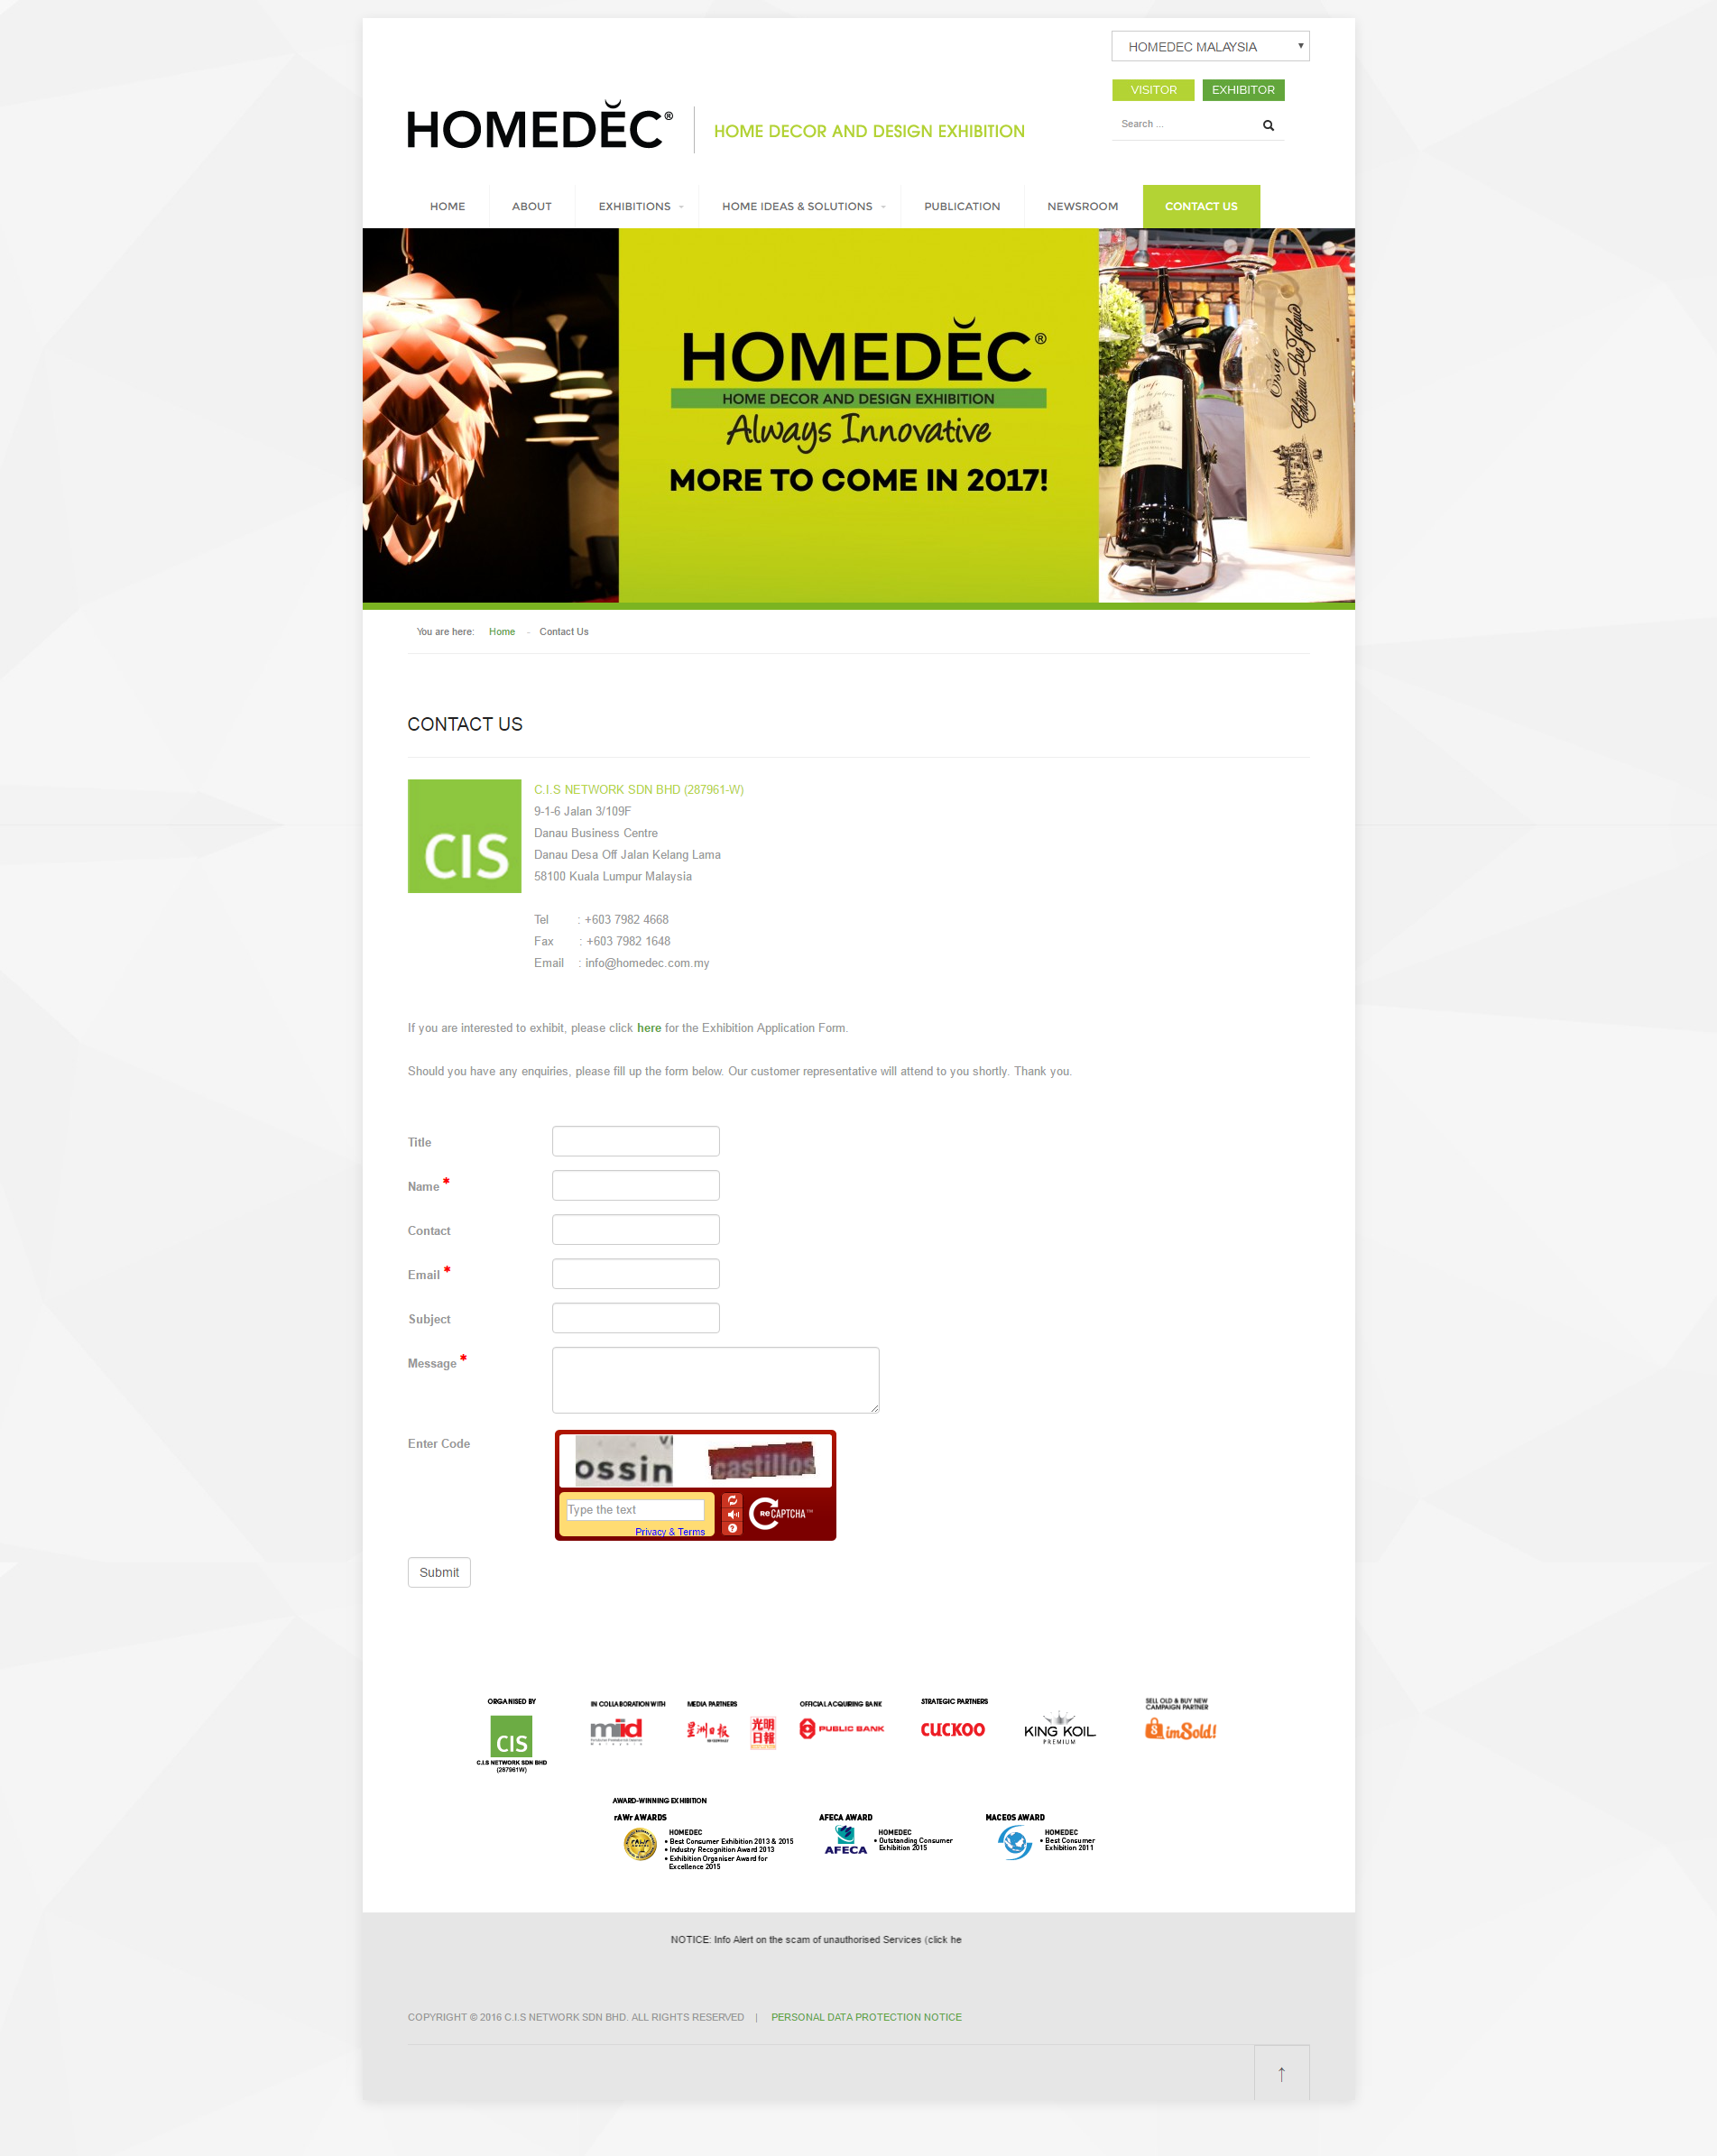 HOMEDEC Contact Us